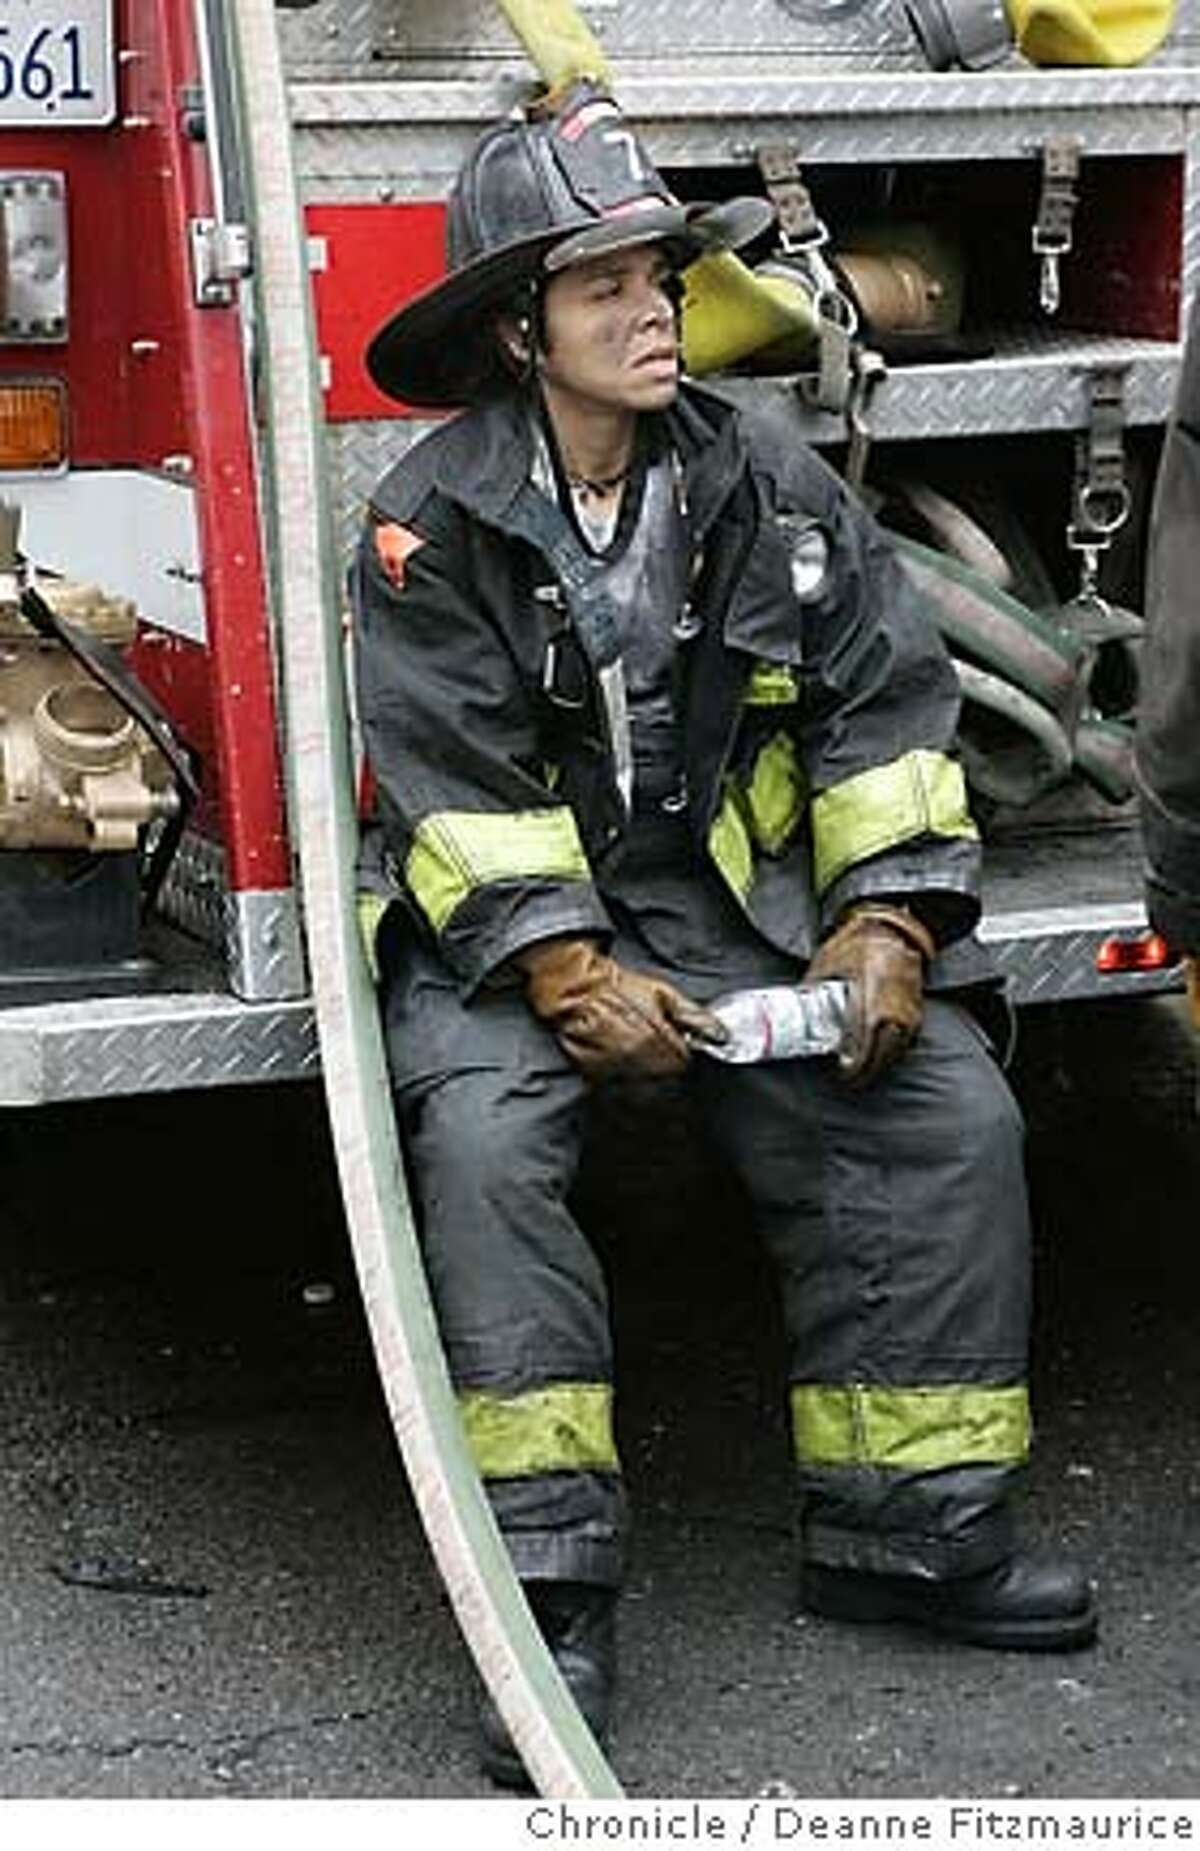 Firefighter Sadie Magaly takes a rest after fighting the fire. Firefighters are on the scene after an early morning fire on Capp Street in the Mission District. Deanne Fitzmaurice / San Francisco Chronicle